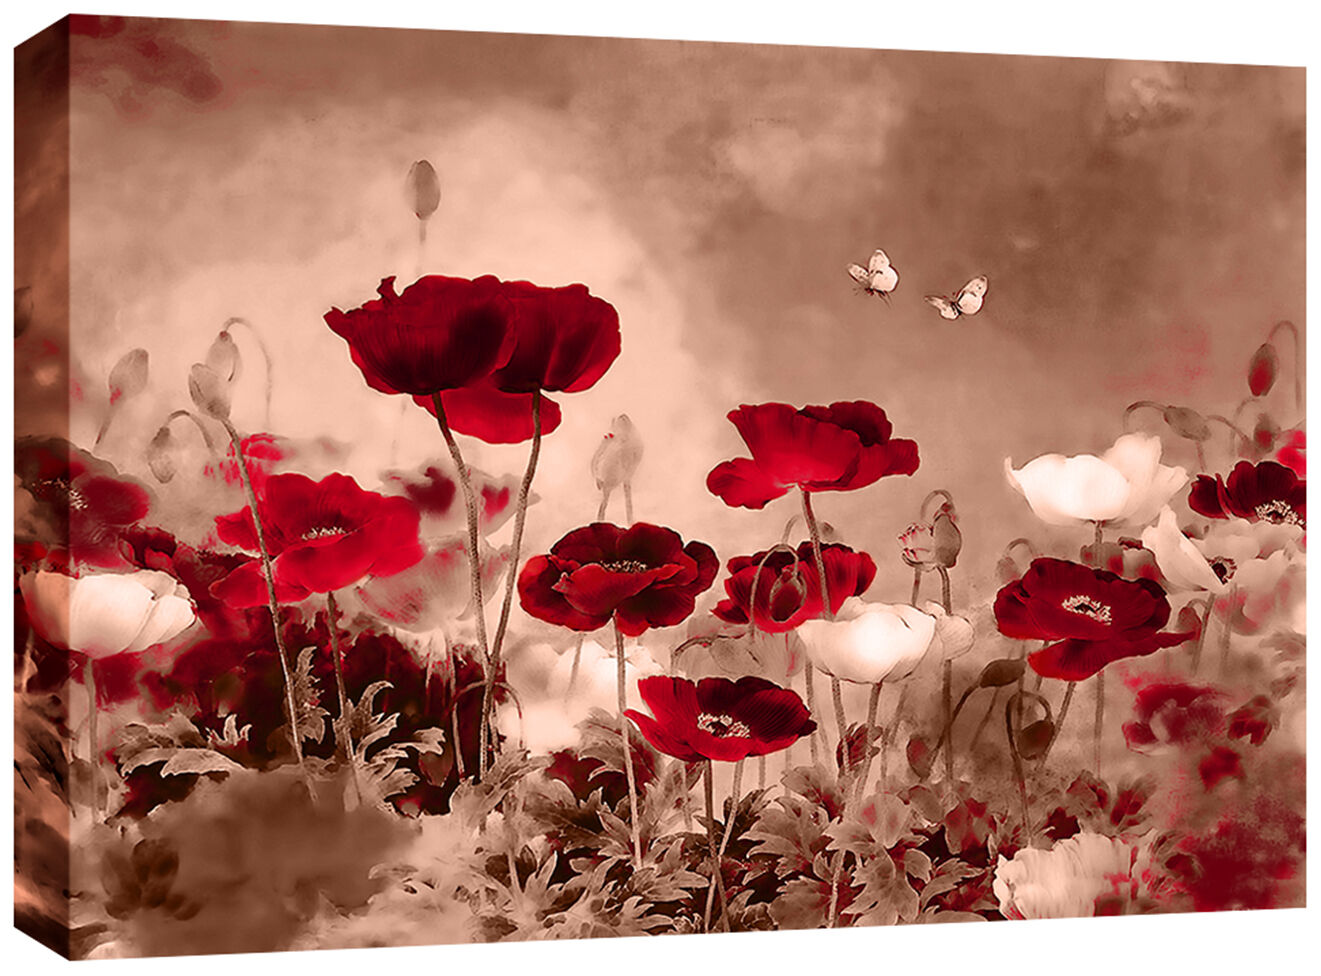 Superieur Red Sepia Canvas Chinese Floral Wall Art Picture 77x52 Cm Framed 3cm Frame